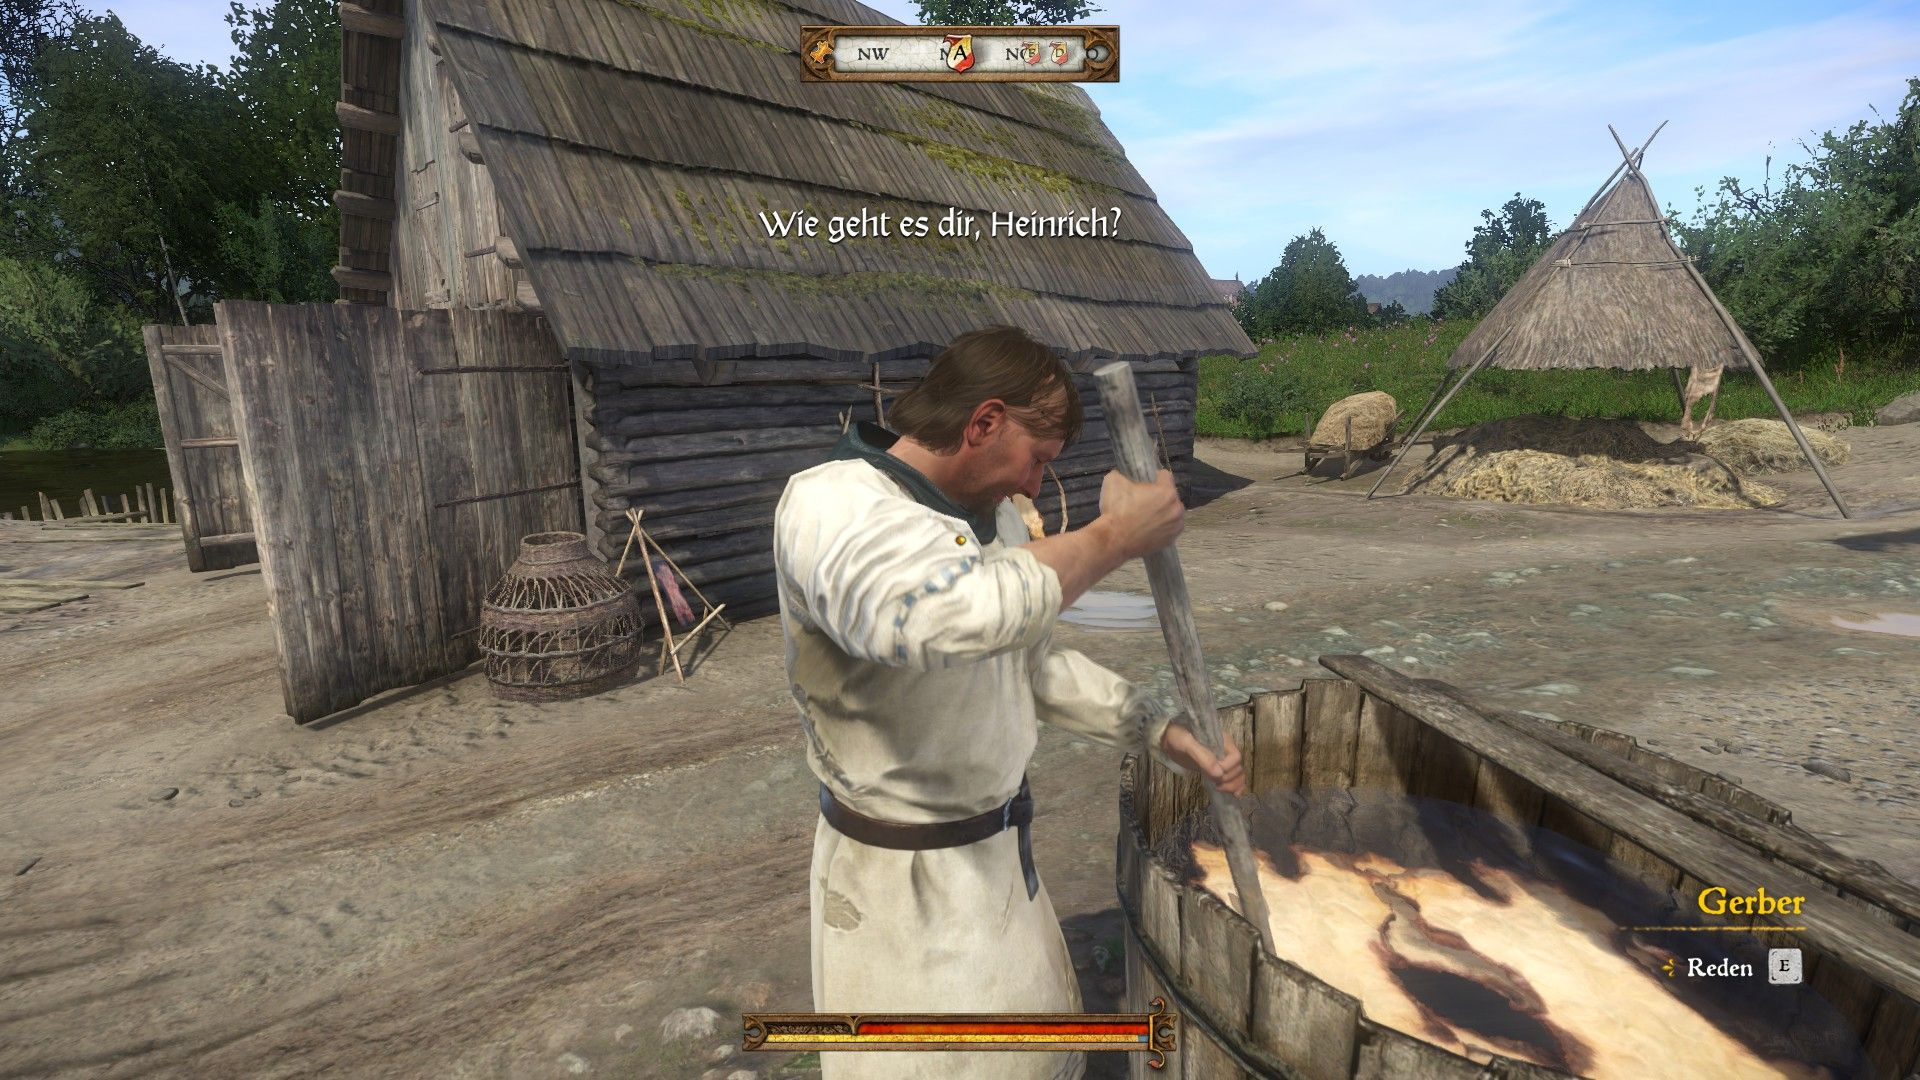 Kingdom Come Deliverance Banditenlager Karte.Kingdom Come Deliverance Komplettlosung 8 Unter